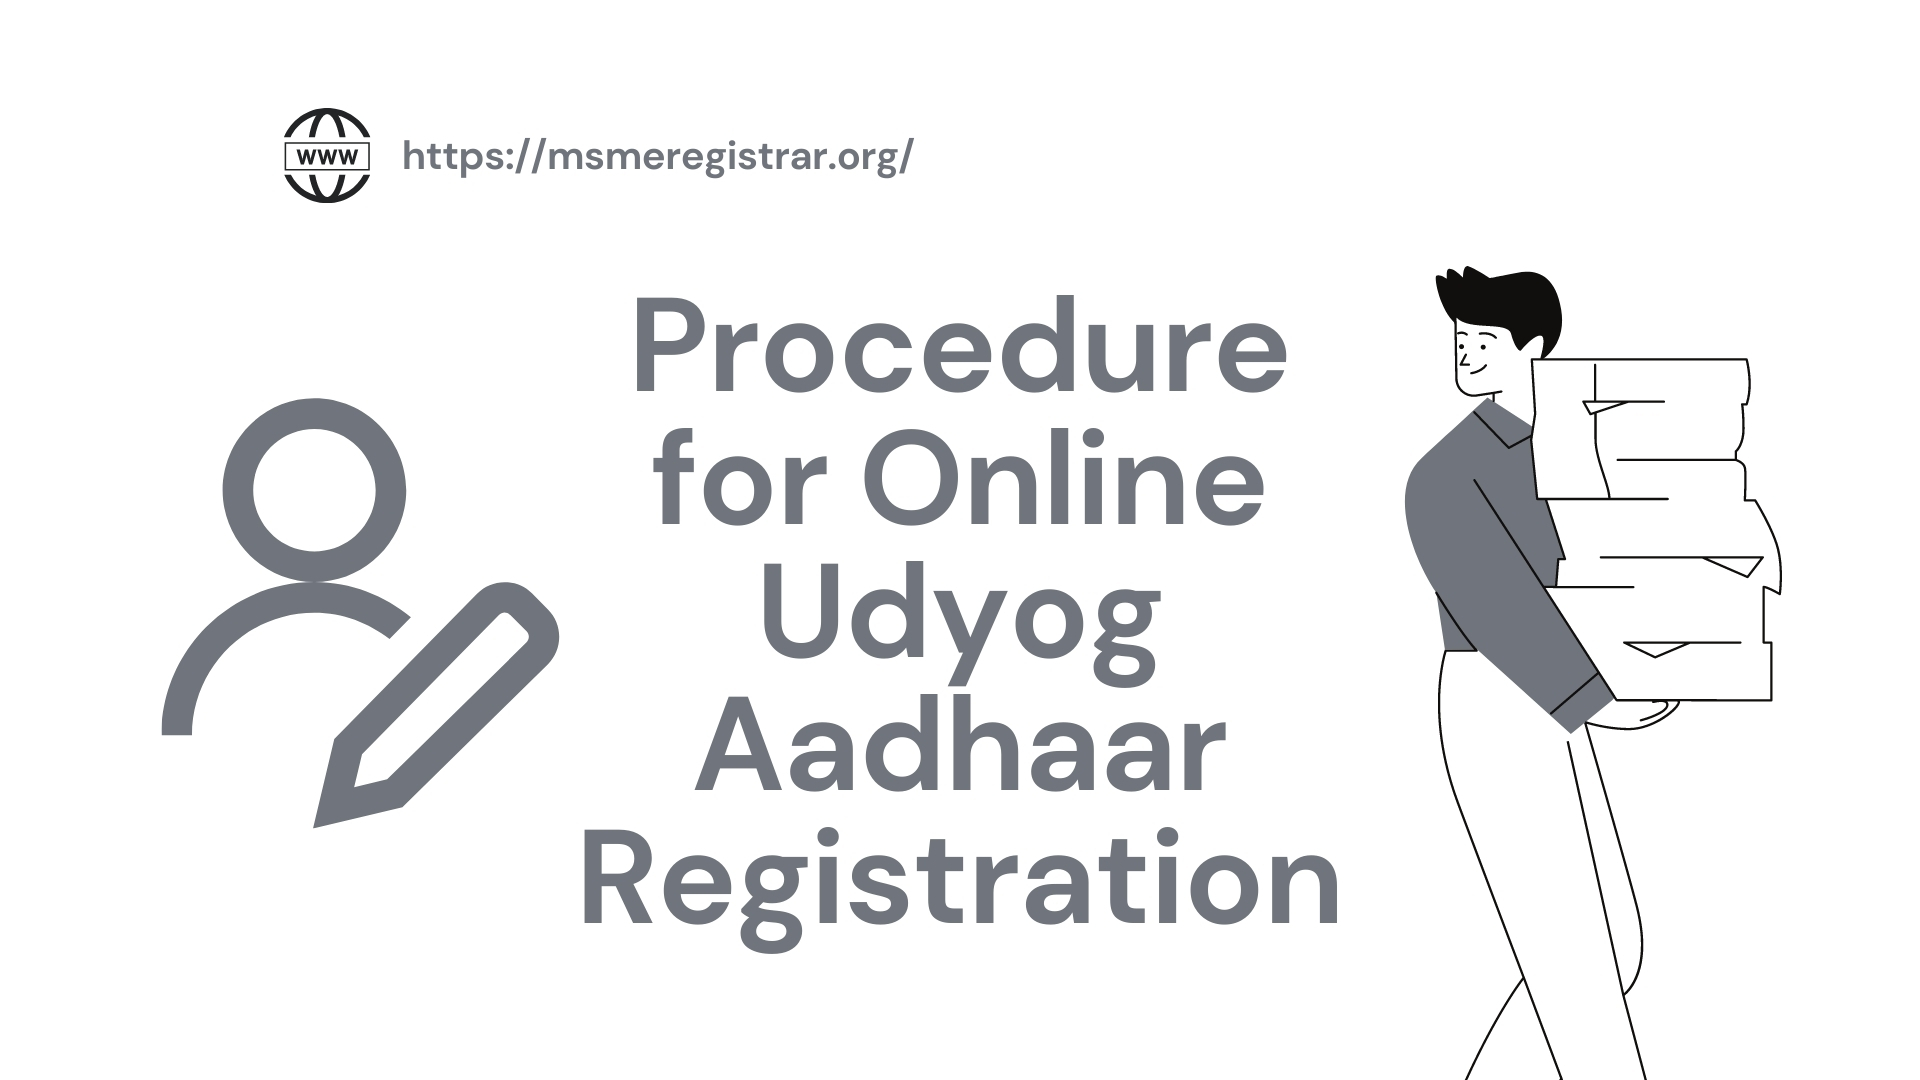 Procedure for Online Udyog Aadhaar Registration